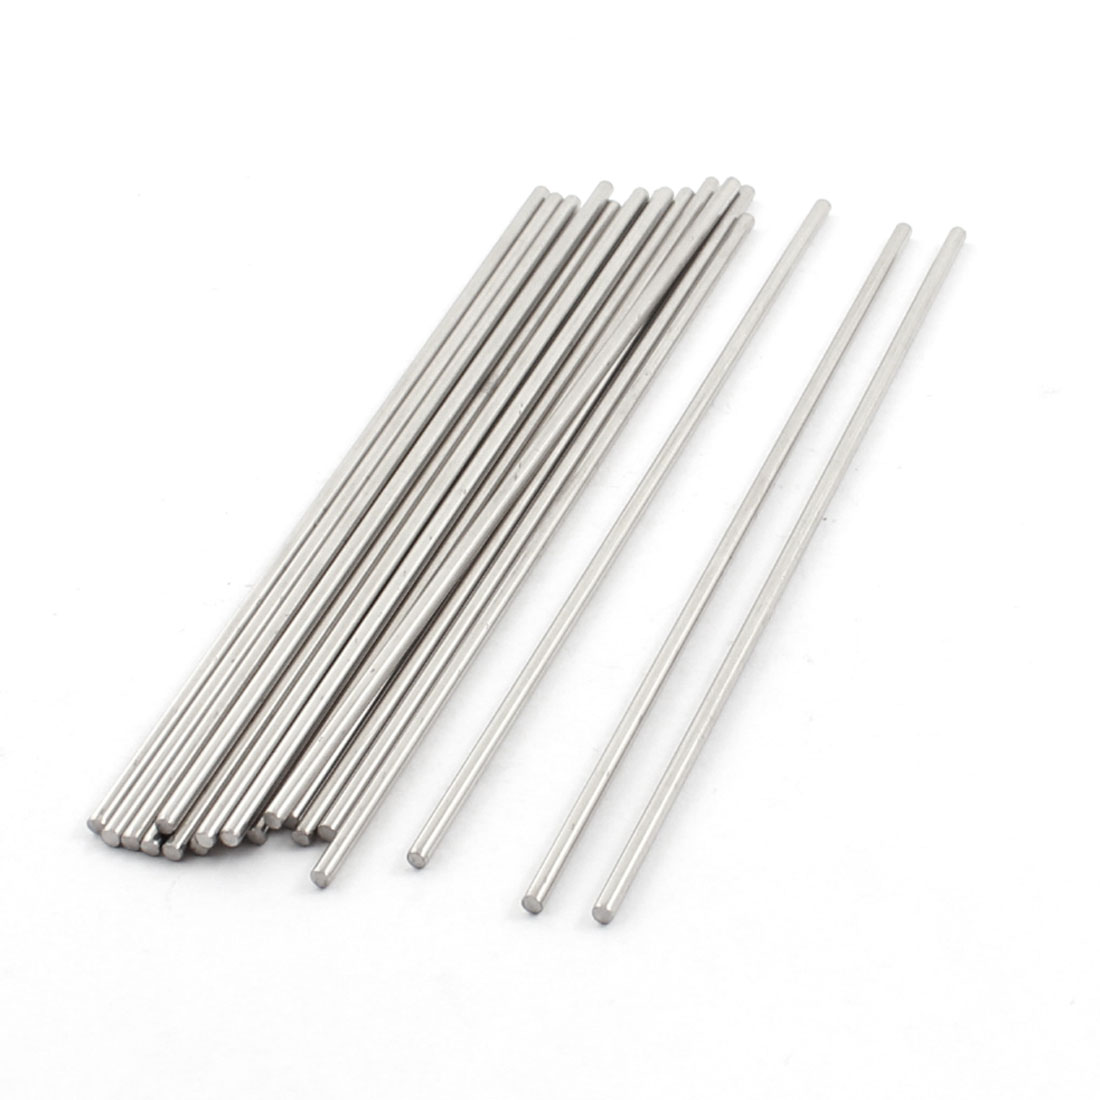 19Pcs RC Truck Toy Spare Parts Stainless Steel Round Rod Bar Shaft 110mm x 2mm